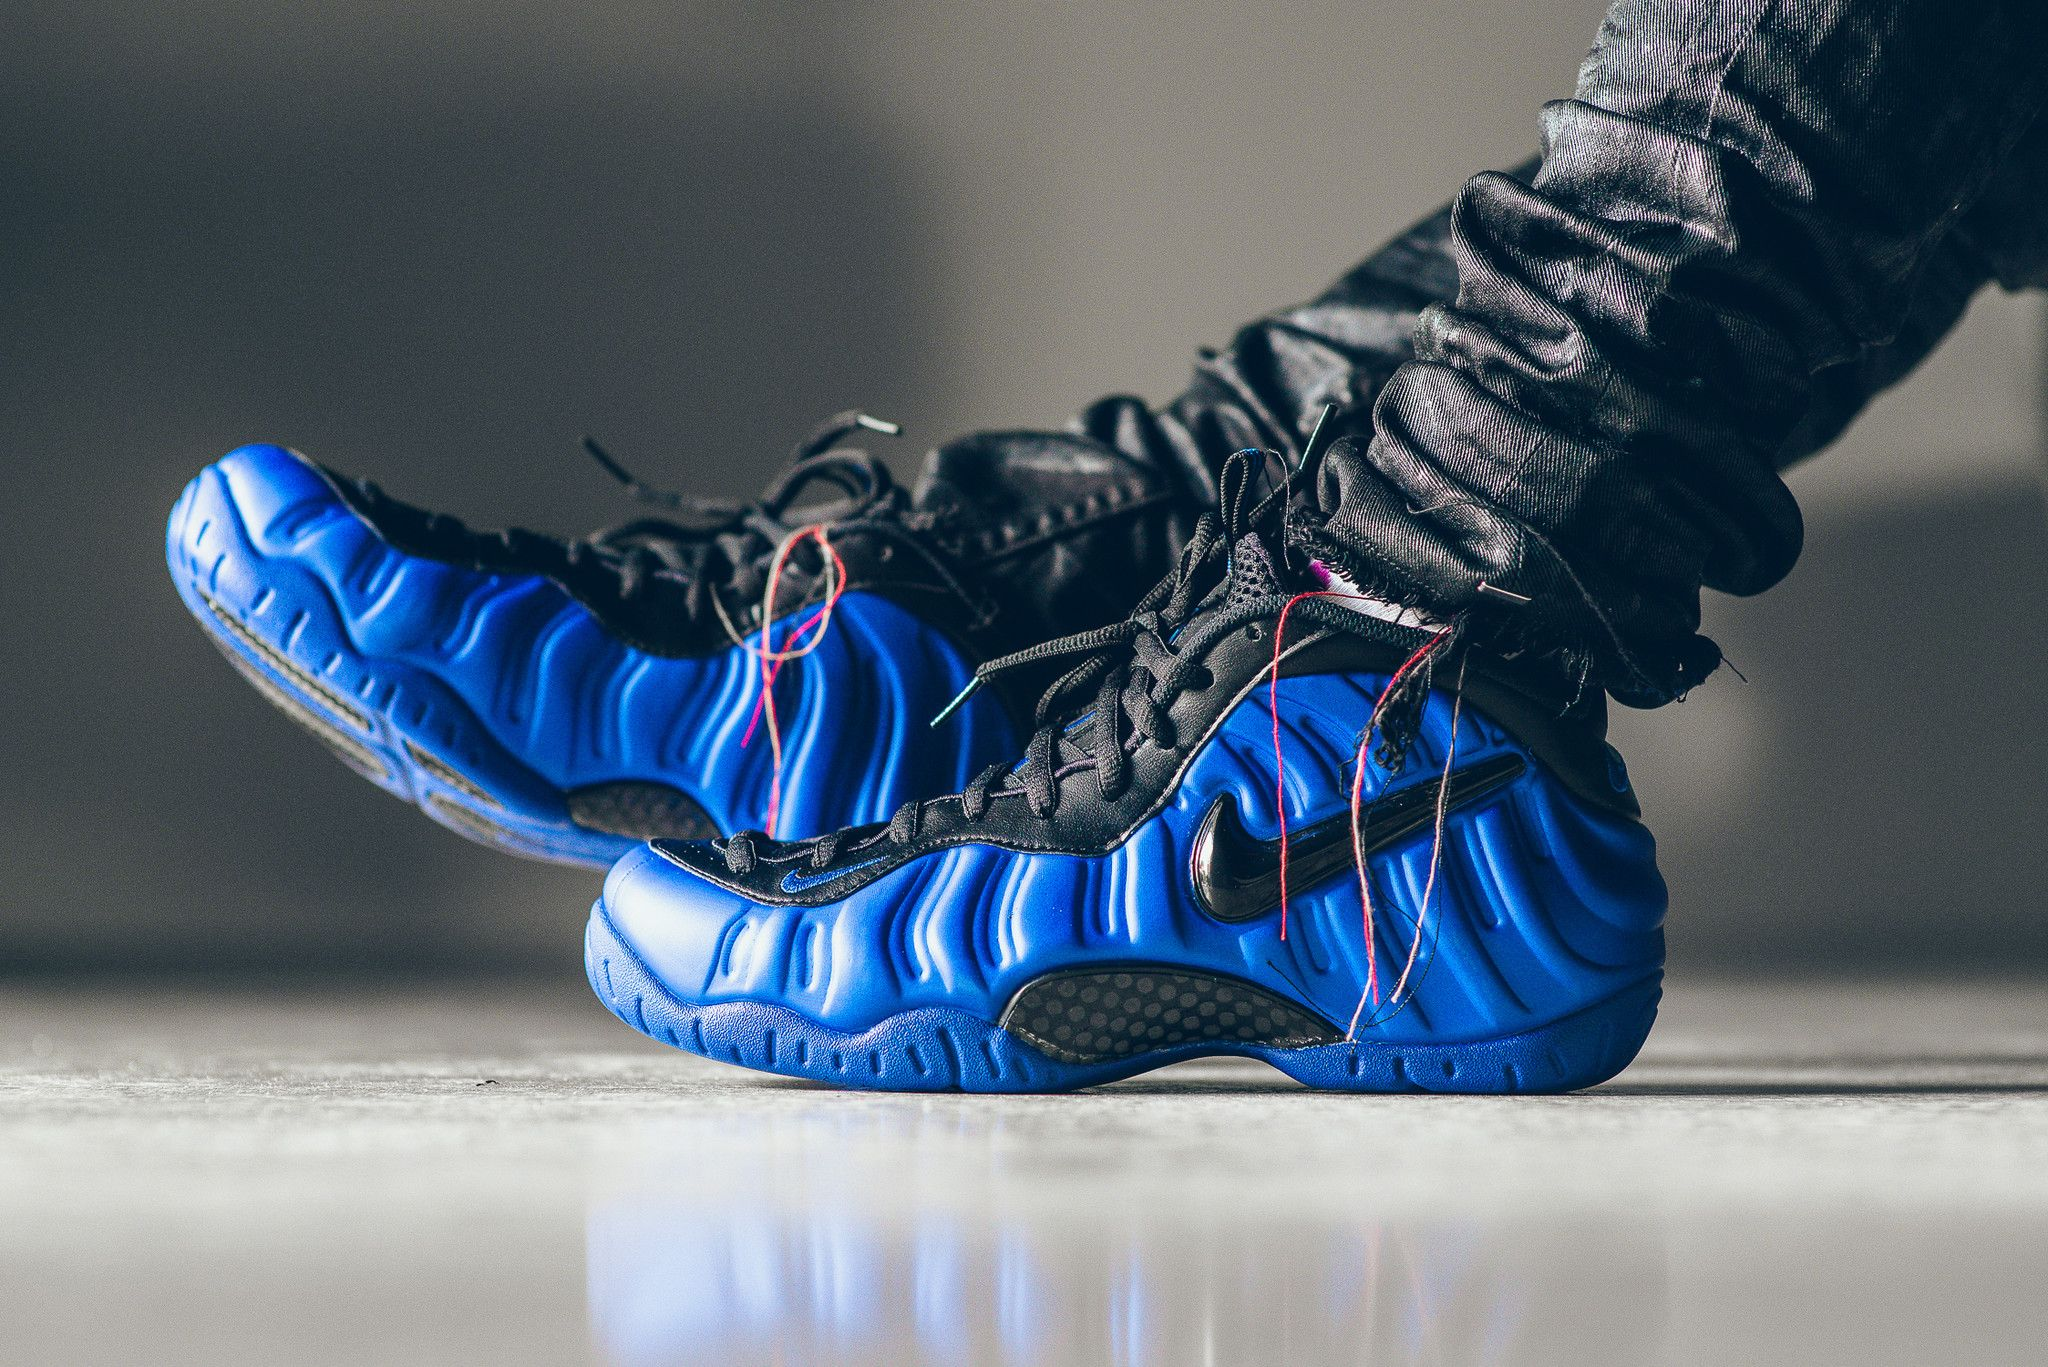 e5cd3110c91 An On-Feet Look At The Nike Air Foamposite Pro Hyper Cobalt